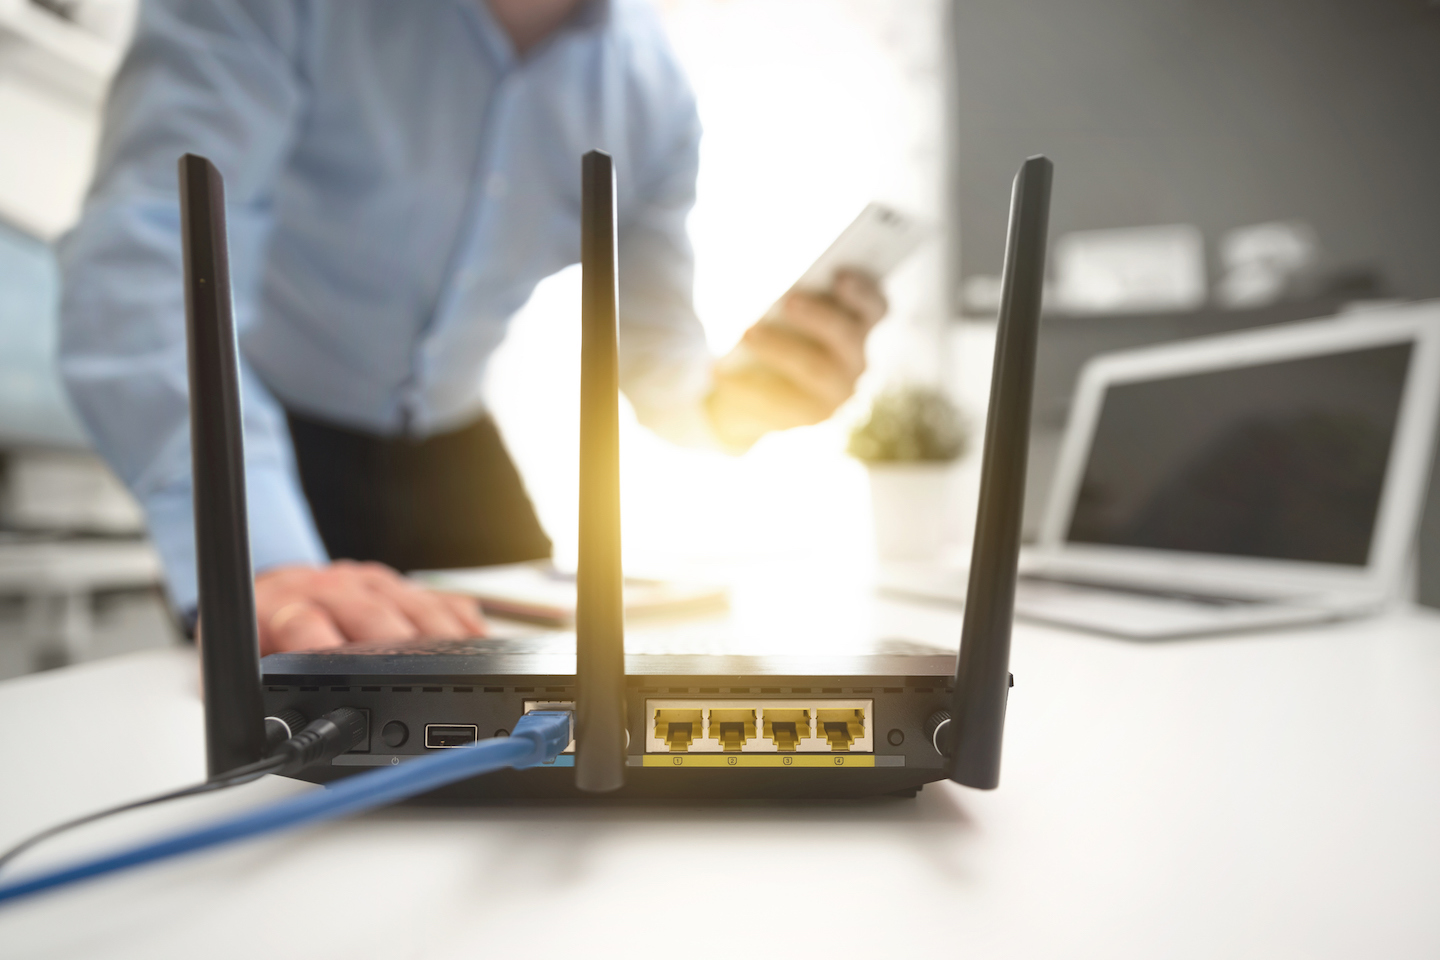 WiFi Not Working? Try These 6 Tips to Fix Your Connection